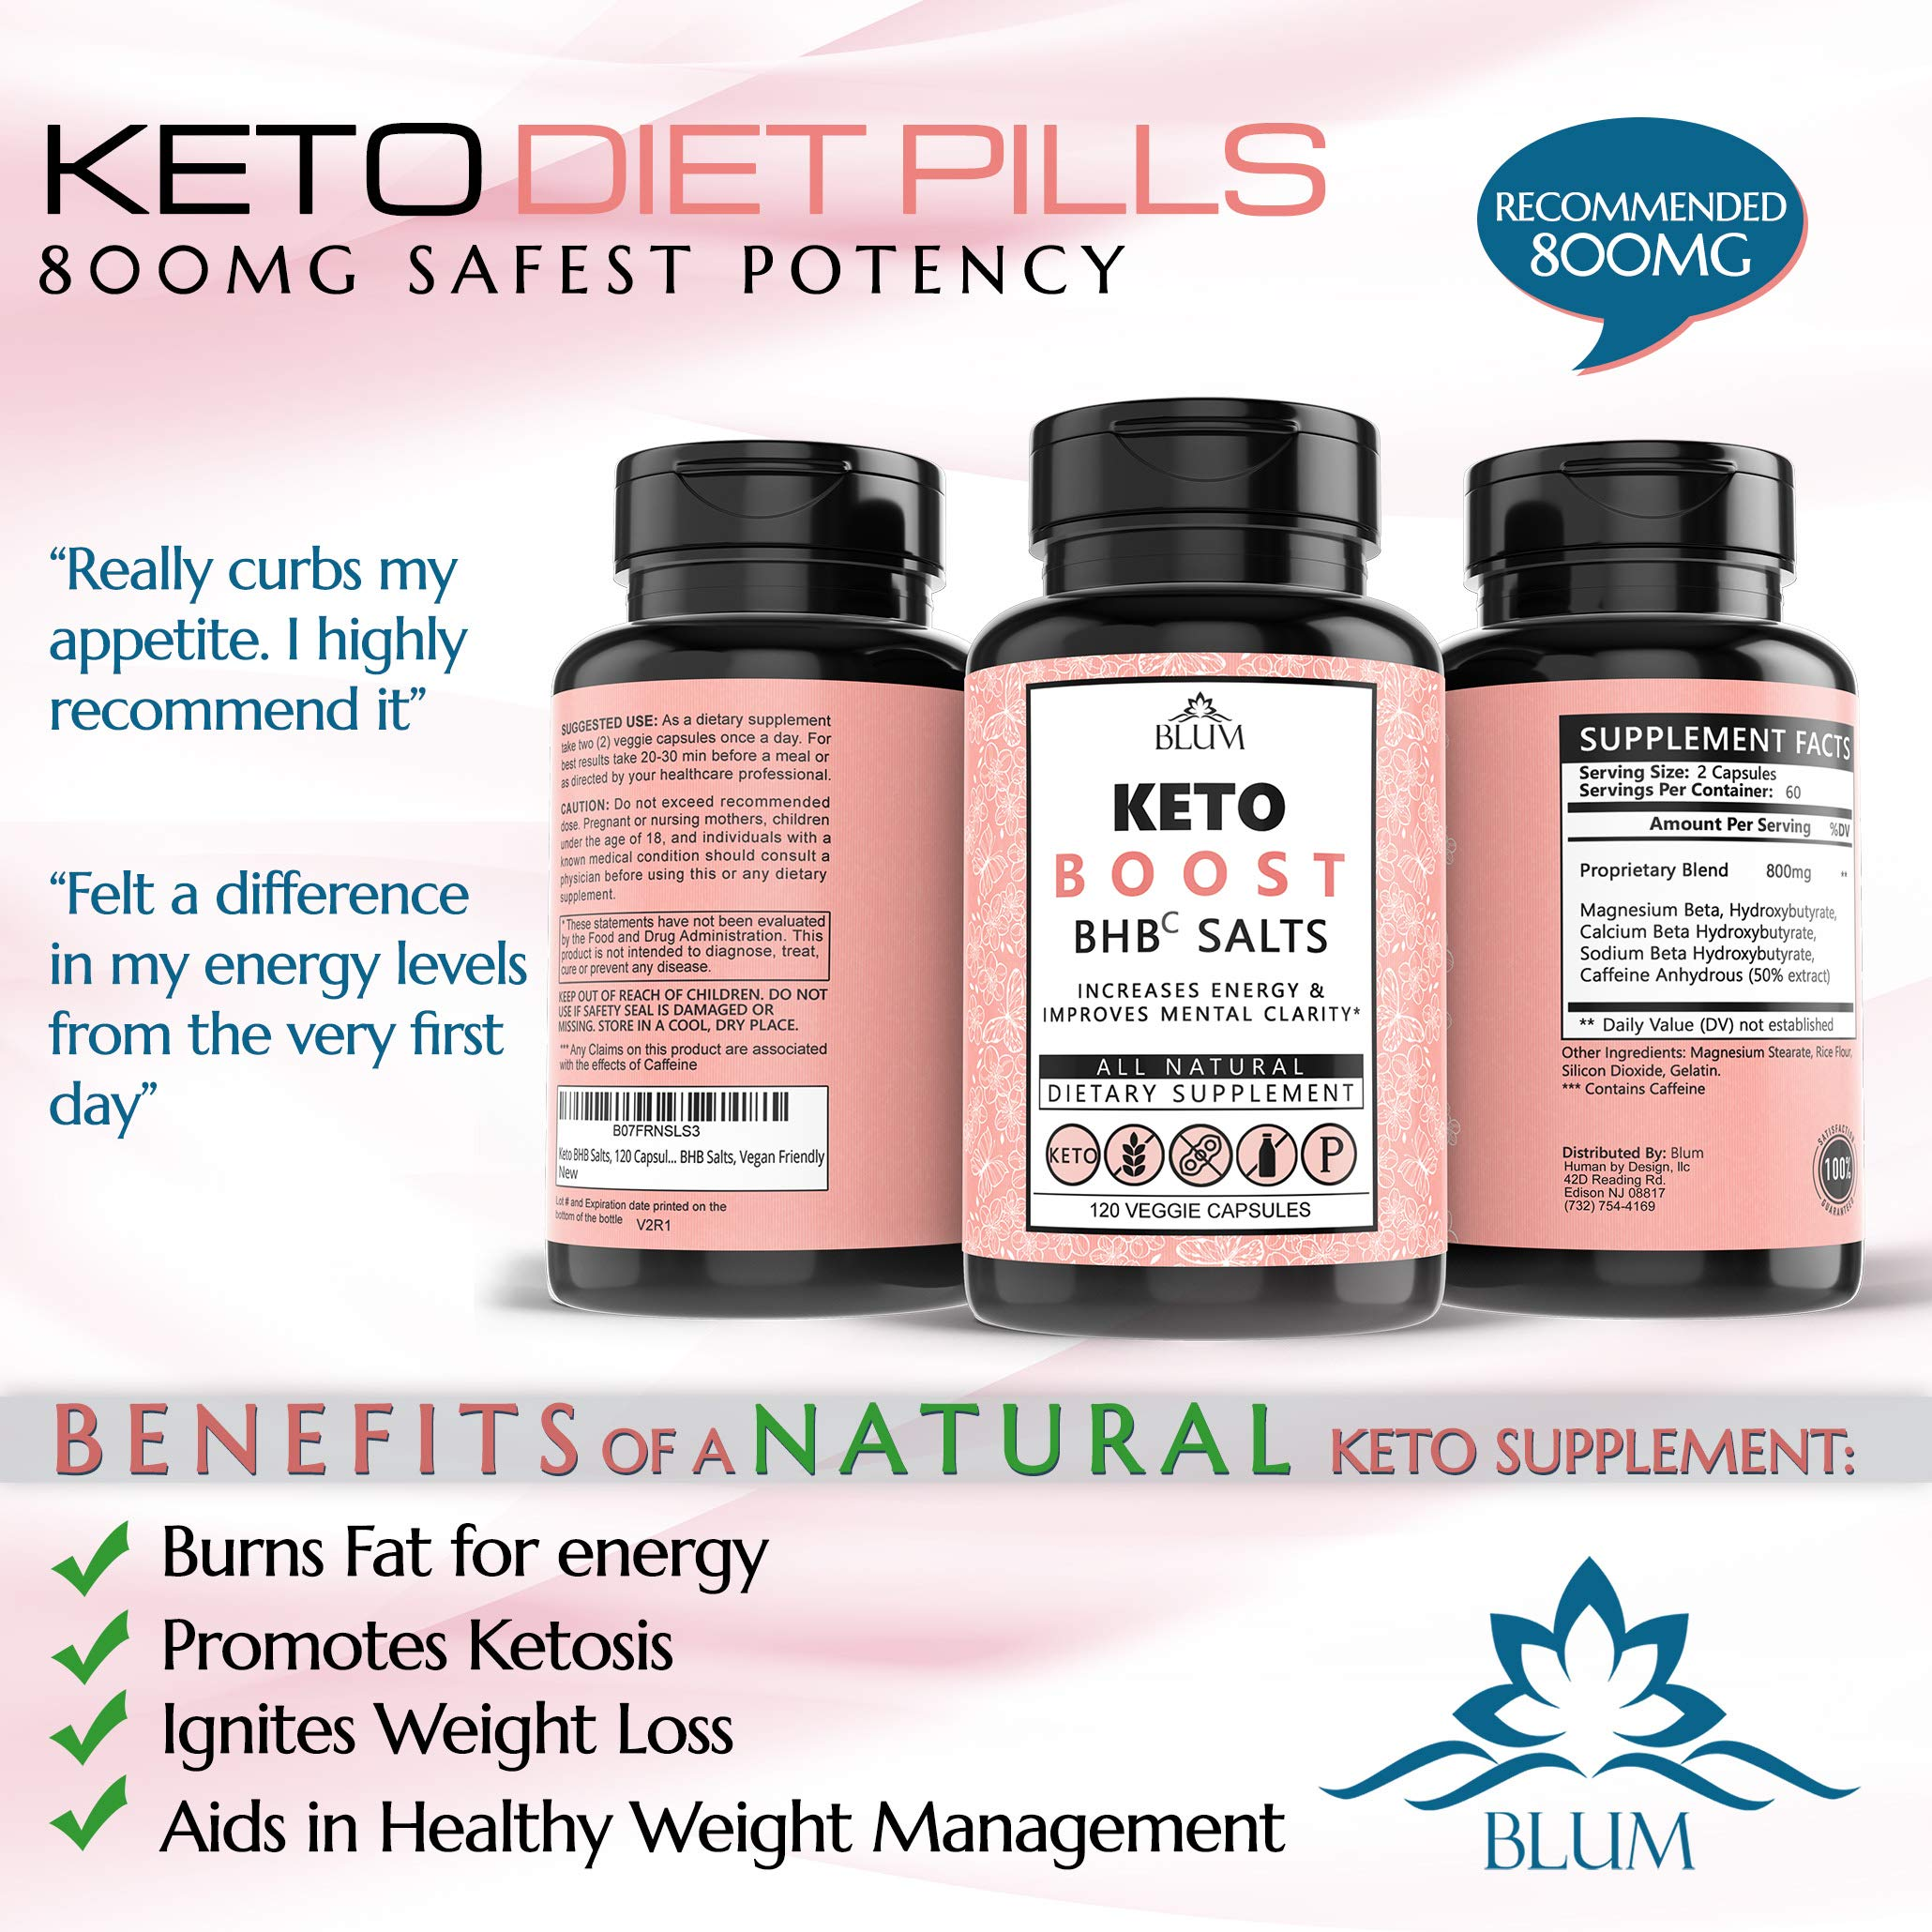 Keto Pills Weight Loss Supplements Keto Diet Pills for Ketosis | Advanced BHB Exogenous Ketones 800mg Capsules for Rapid Fat Burn, Suppress Appetite, Increase Metabolism, Energy and Mental Focus 120ct by Ovillow (Image #4)